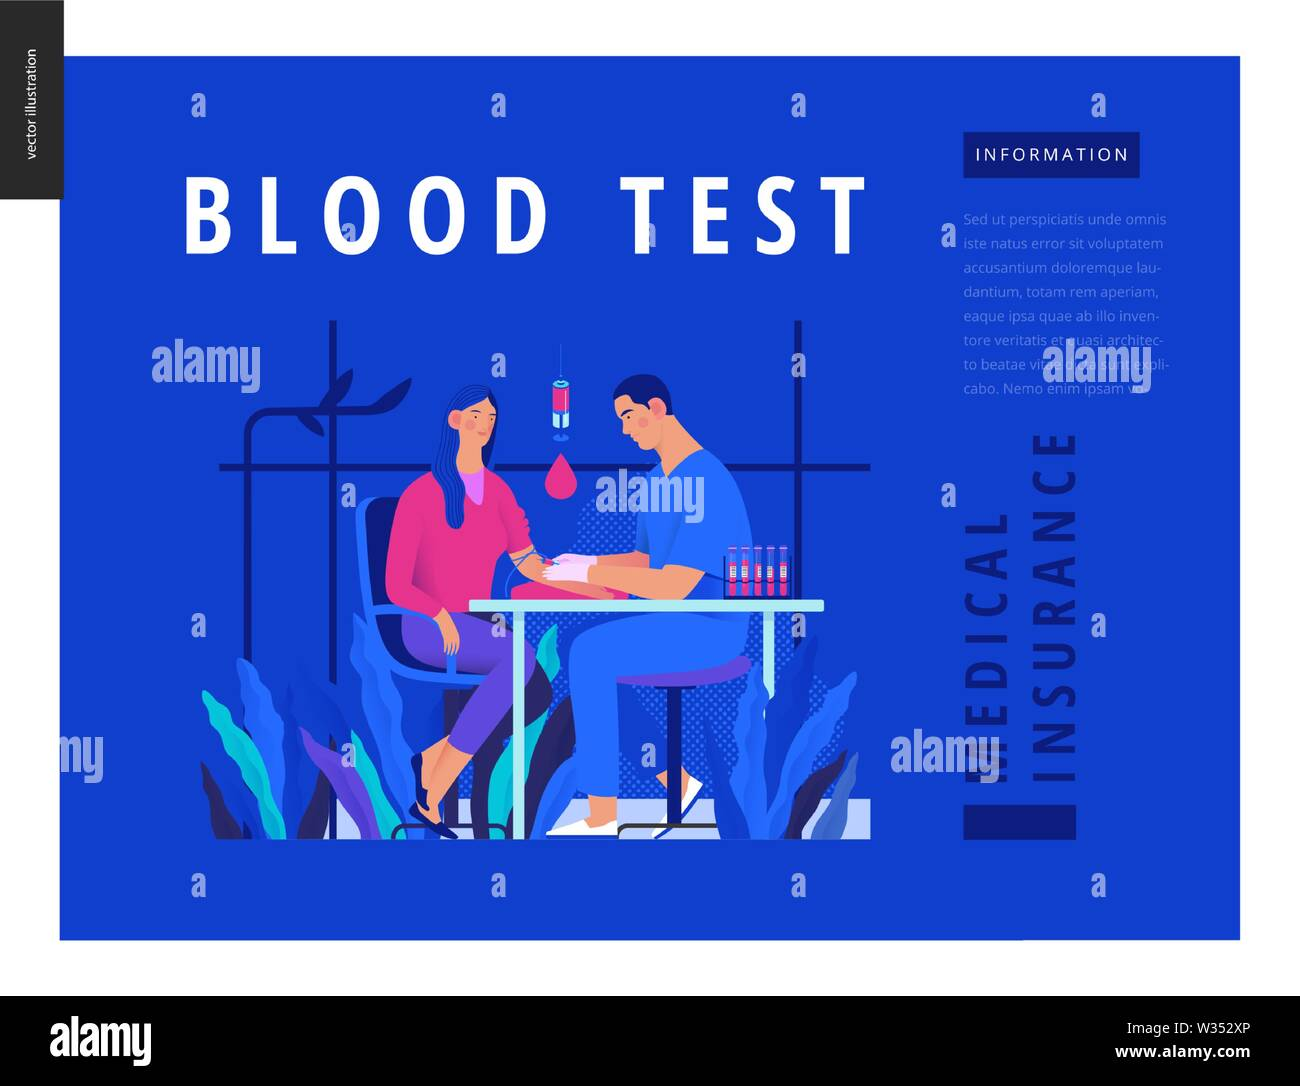 Medical tests Blue template - blood test - modern flat vector concept digital illustration of blood test procedure - patient and doctor with syringe a Stock Vector